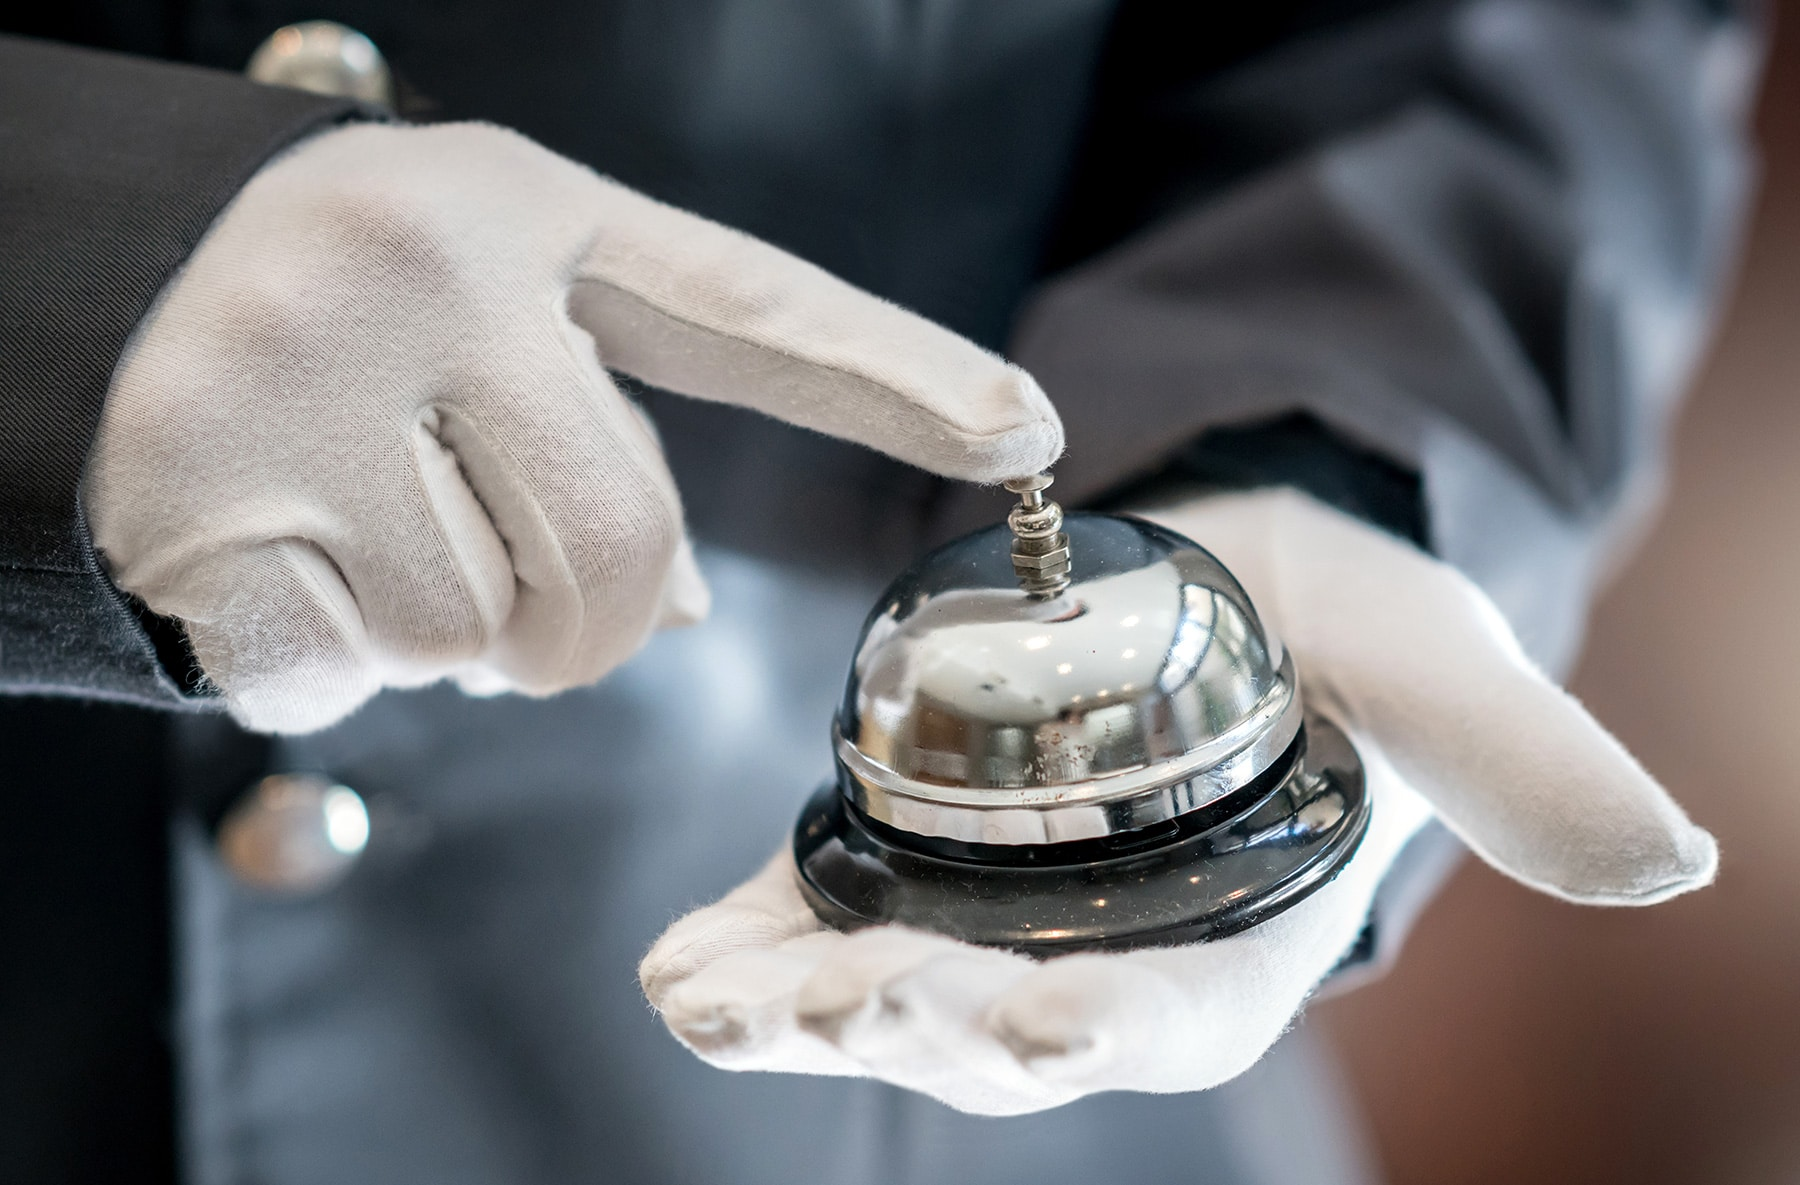 NFCW Expo's concierge service. Picture of white gloved hands holding a hotel bell.